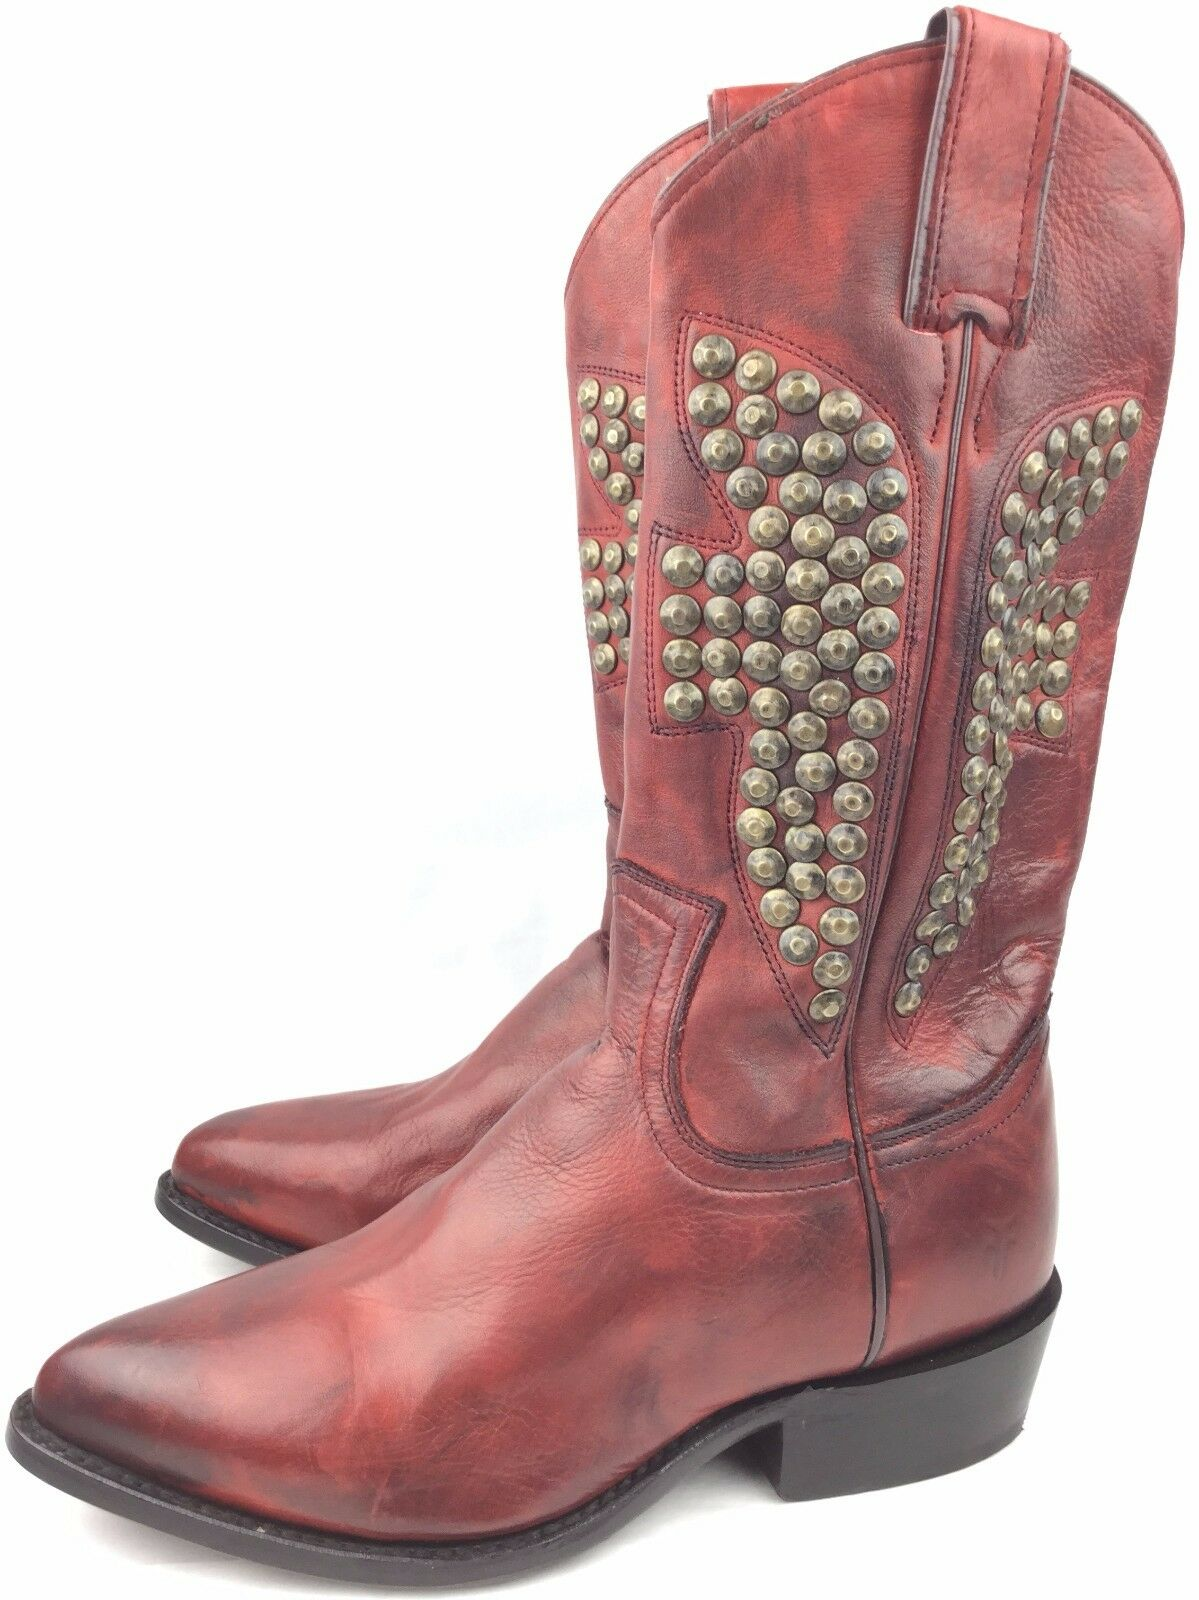 Frye Billy Hammered Stud Burnt Red Soft Vintage Leather 77586 Boots sz: US 6